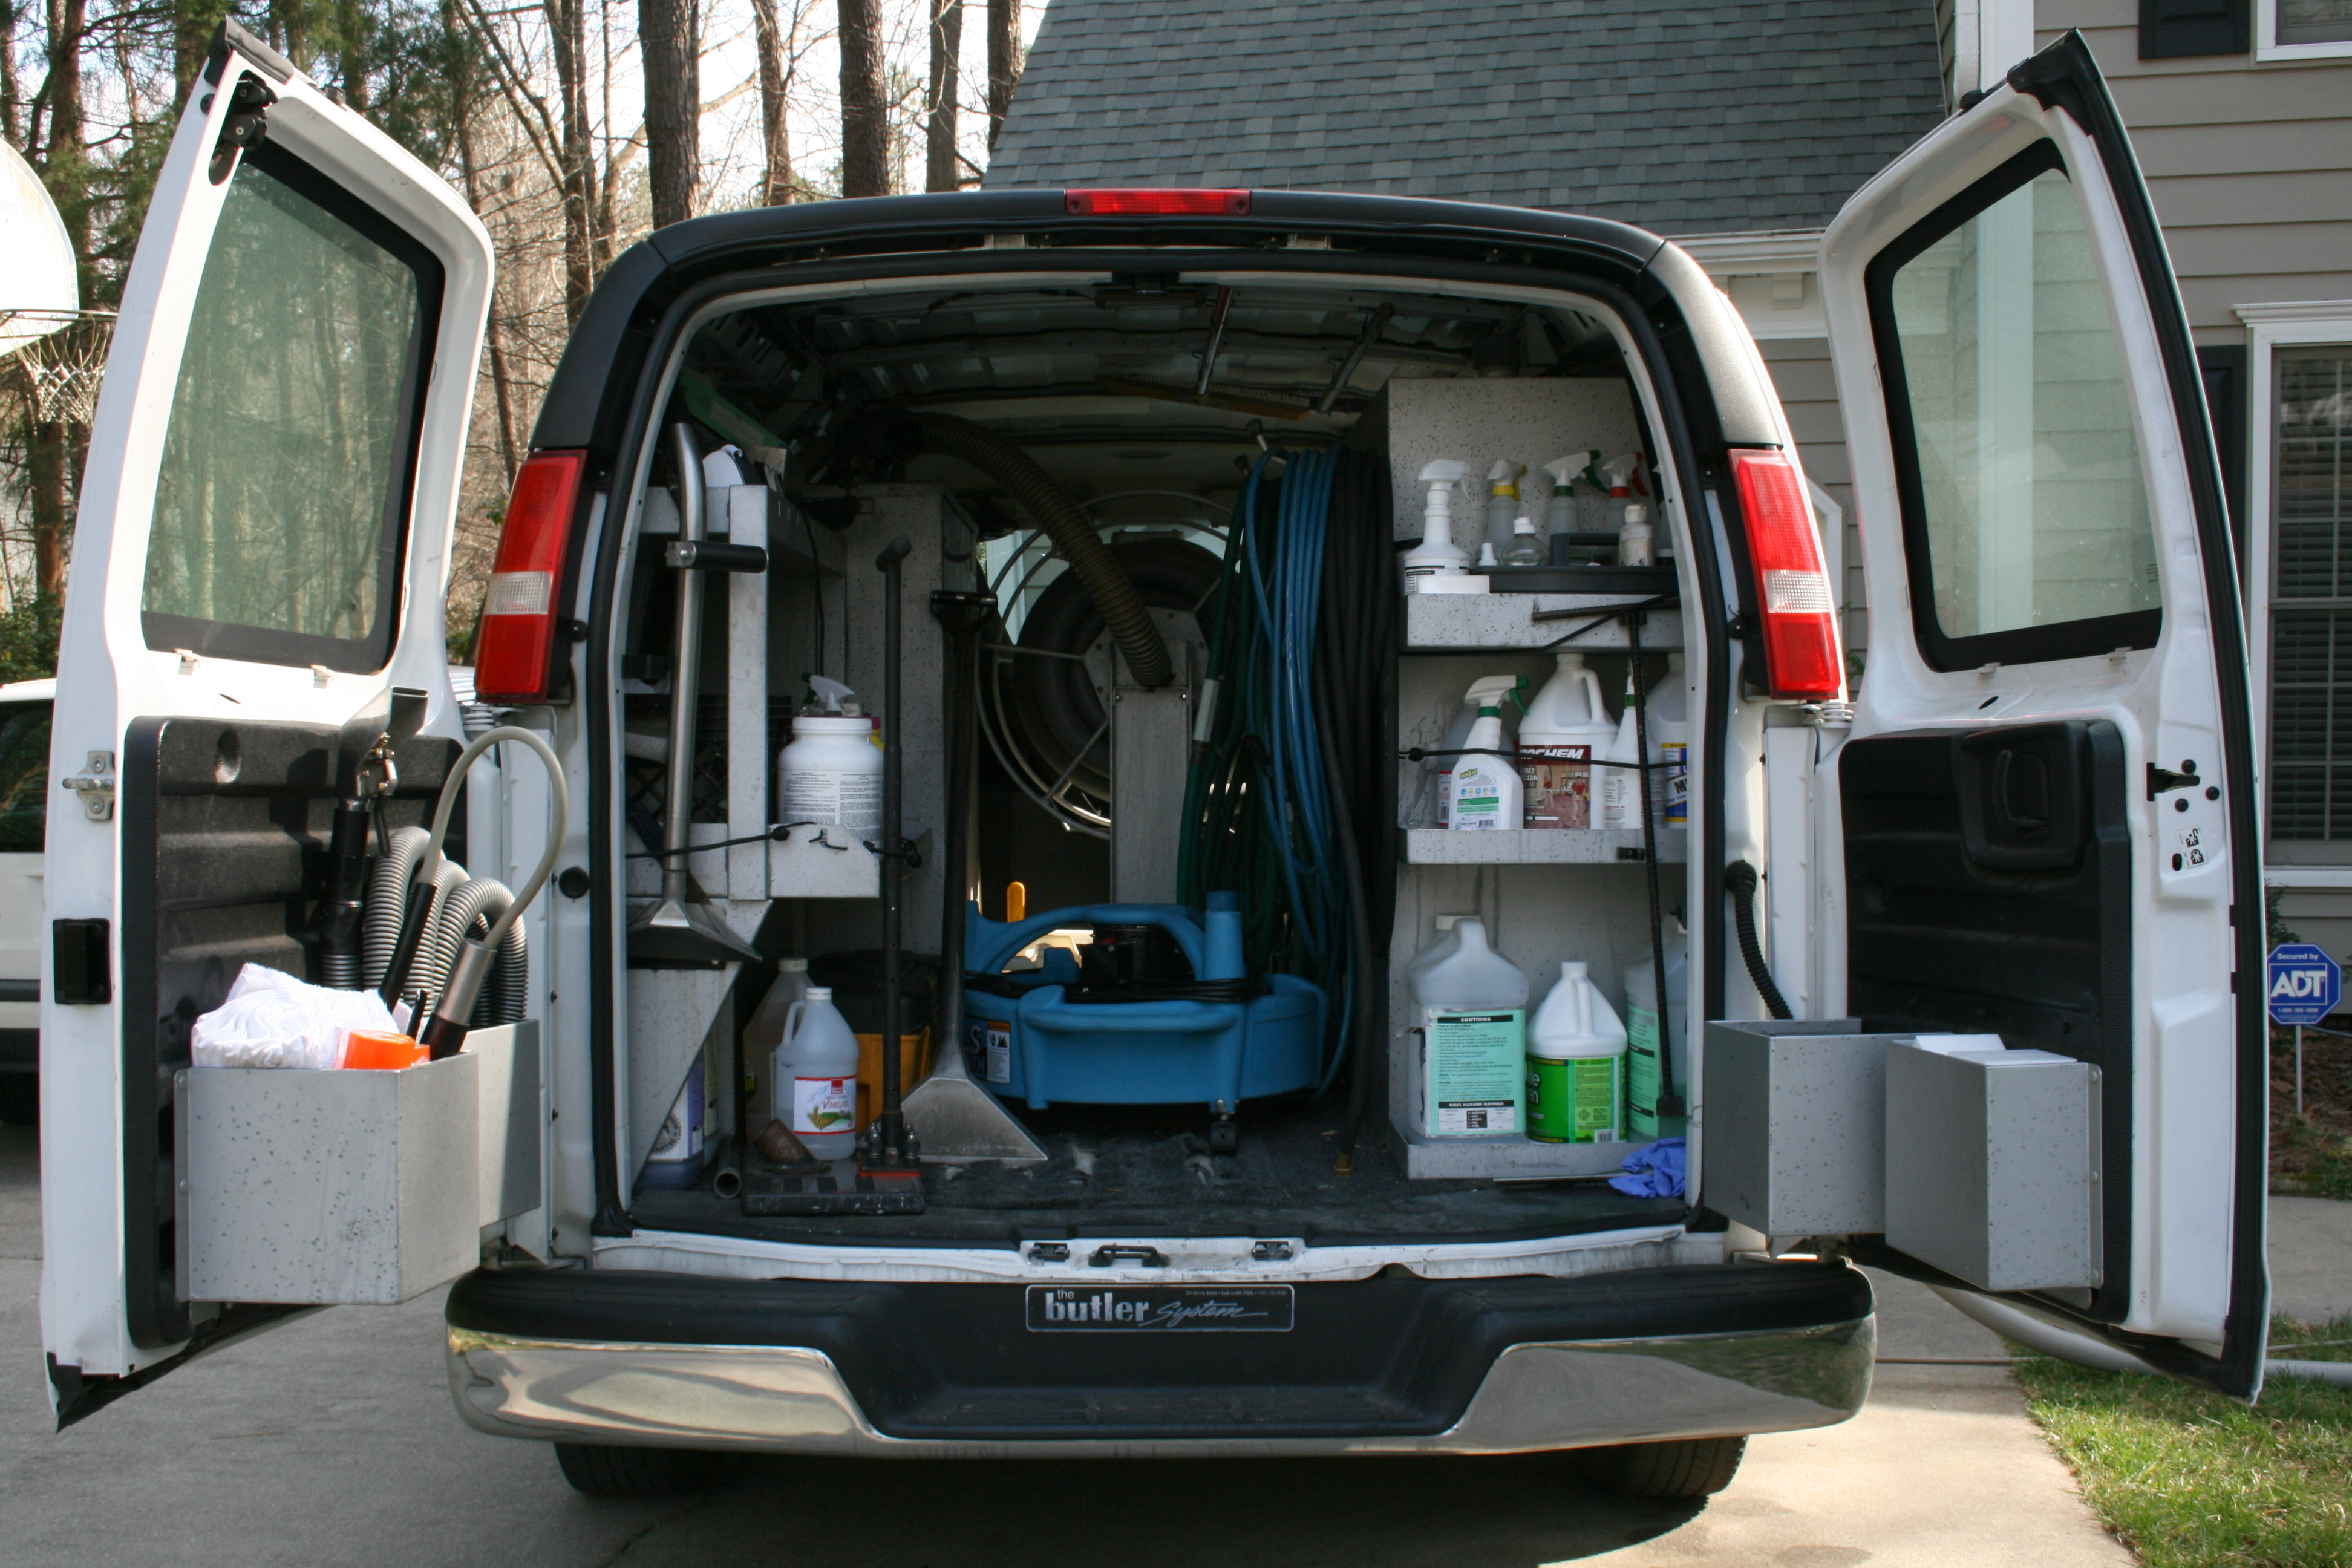 carpet cleaning equipment in a van